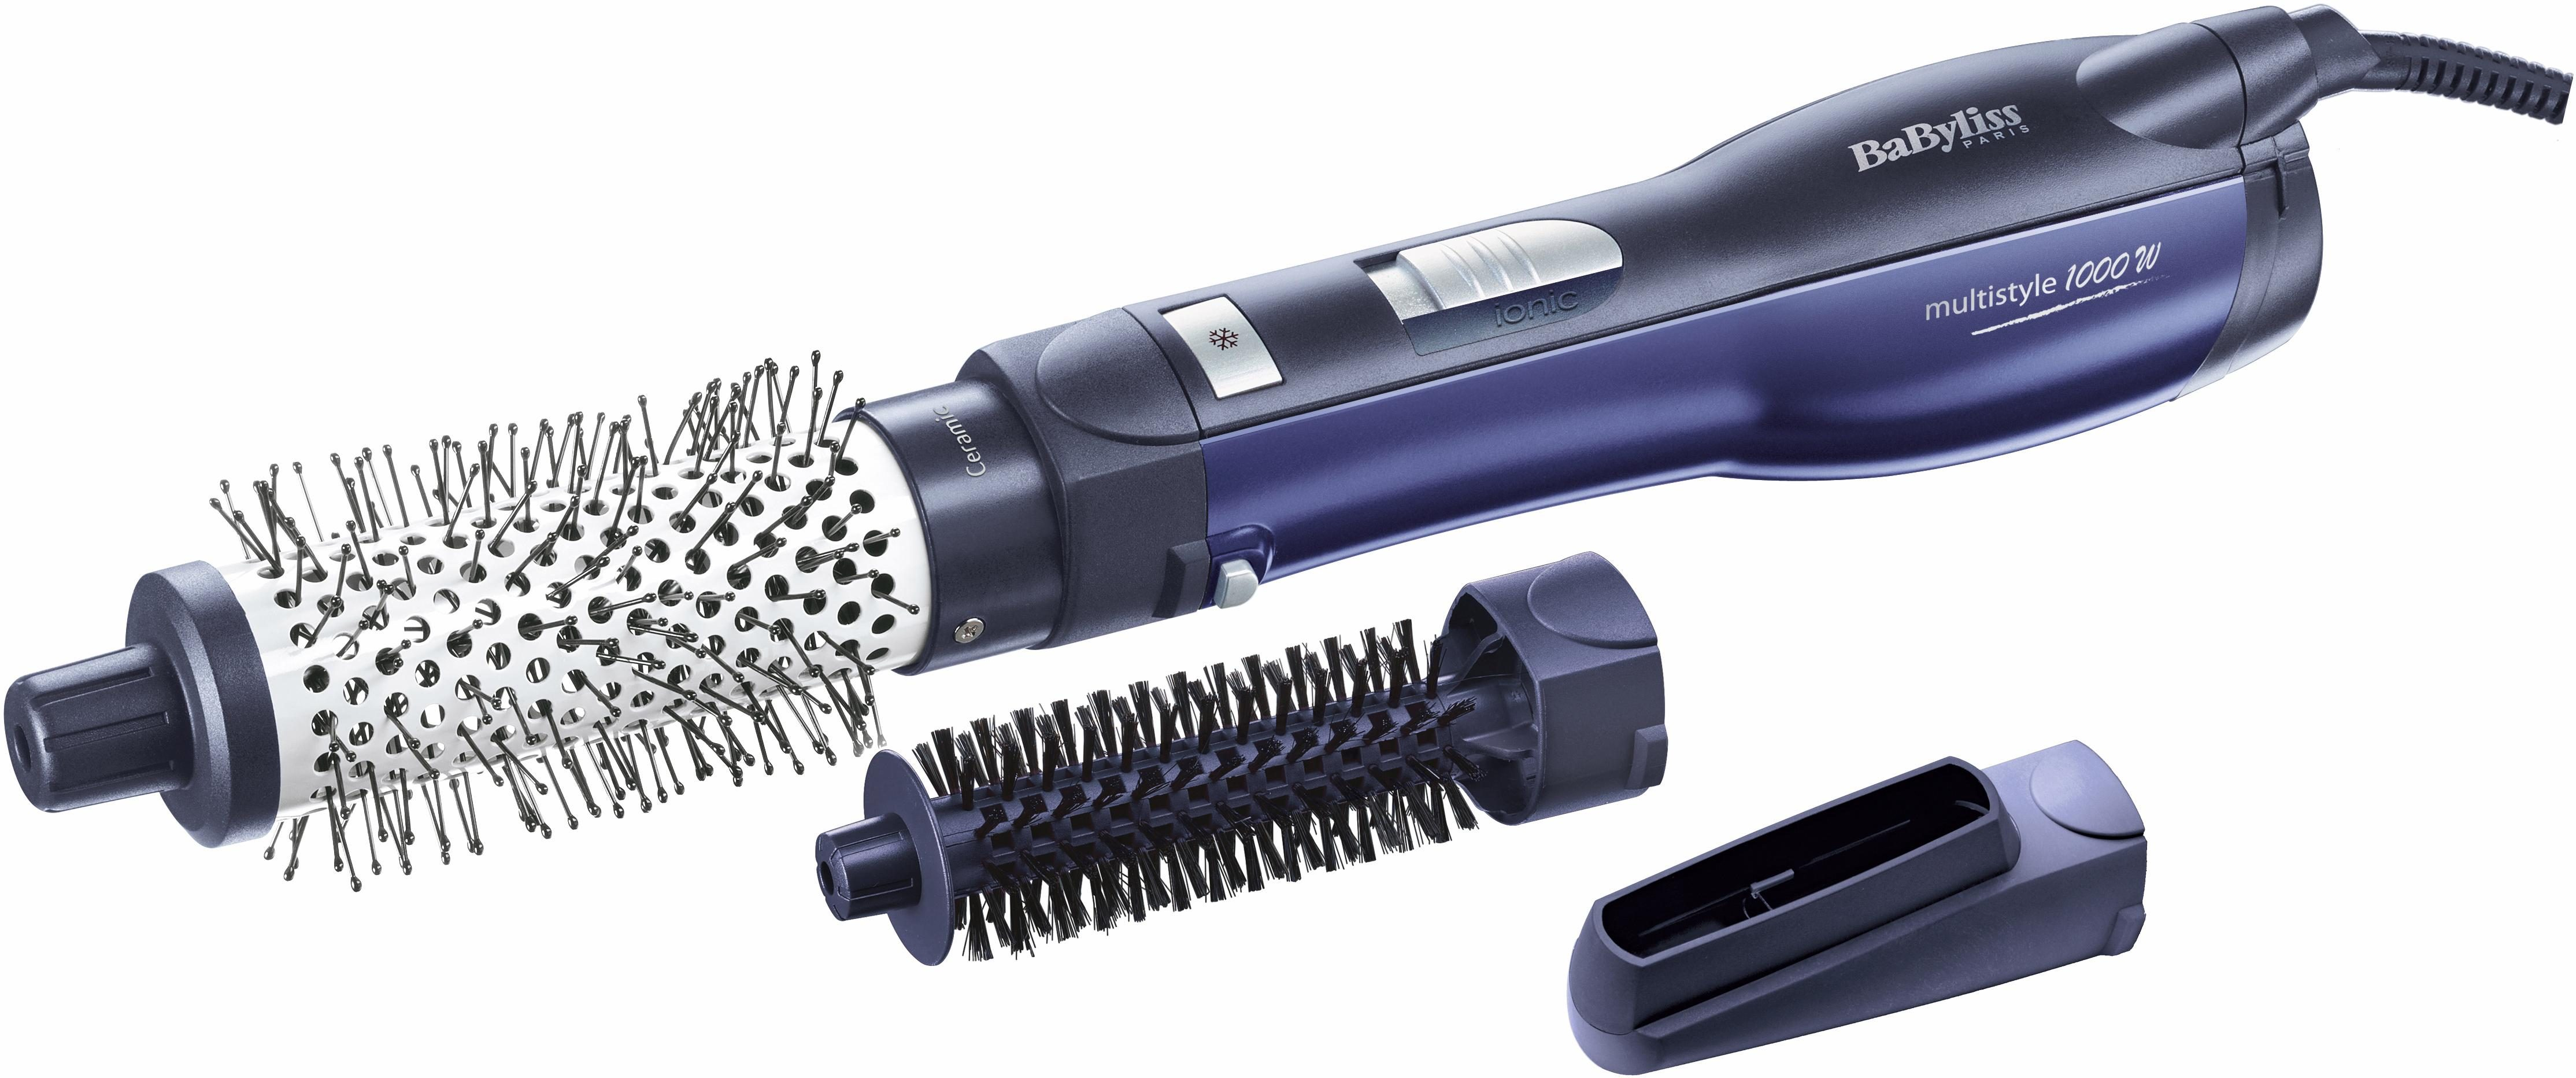 Babyliss Warmluftbürste Multistyle AS101E, Trocknen & Stylen 2 in 1